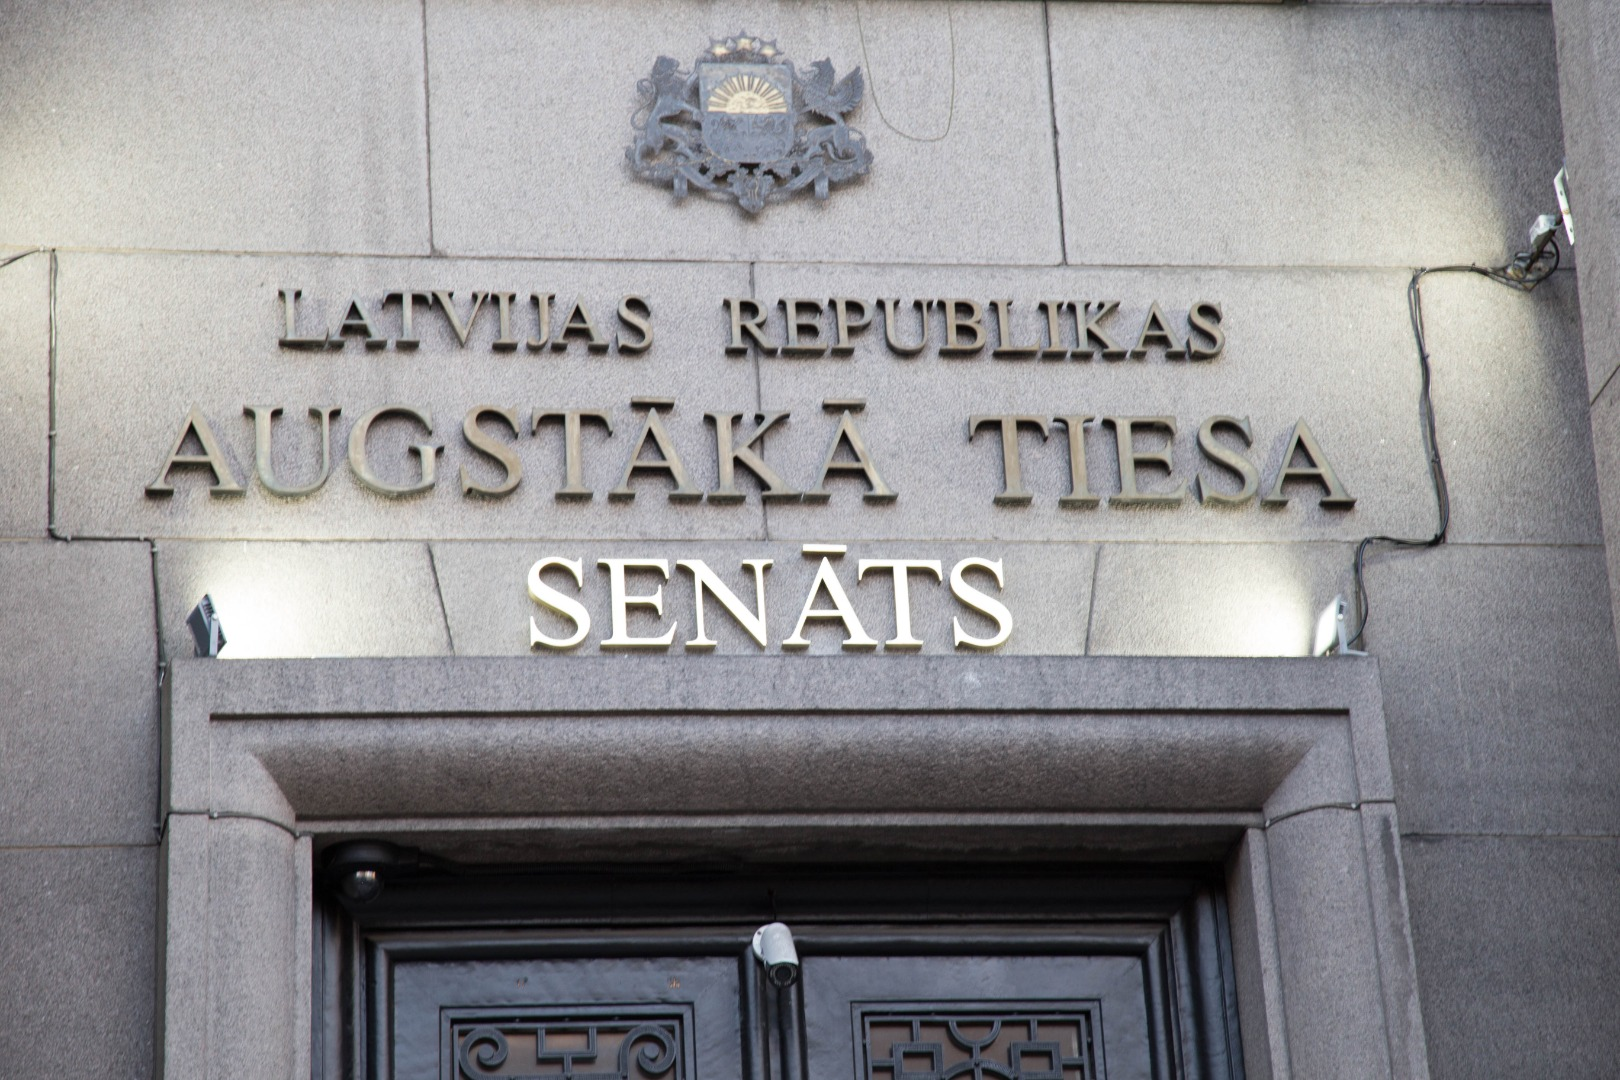 """28.11.2018. The centenary celebration of the proclamation of the State of Latvia in the Supreme Court began with a long-awaited event – the opening of the historic name of the Senate above the entrance to the court. With the decision of the Saeima of October 25, the name """"Senate"""" was returned to the cassation court. The State President promulgated the law shortly before the public holiday, the law came into force on November 28. The name of the Senate now has the same force as the """"Supreme Court""""."""